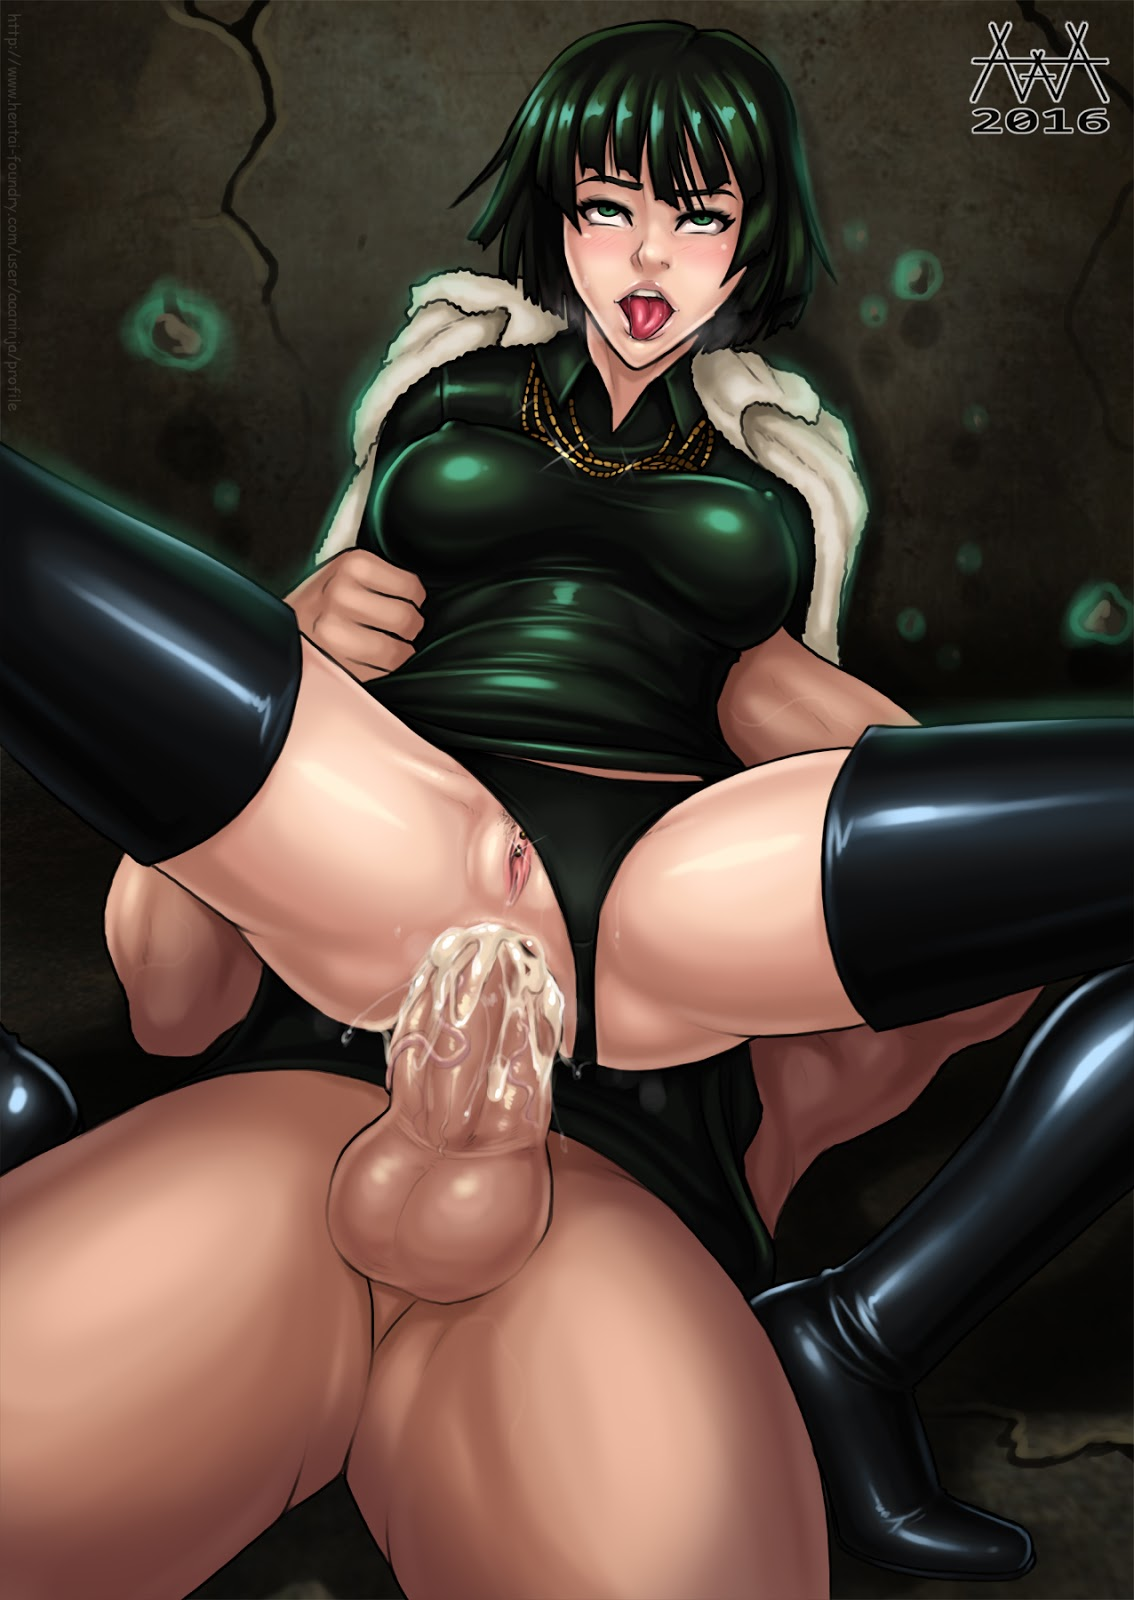 ass one punch man fubuki Miss kitty great mouse detective